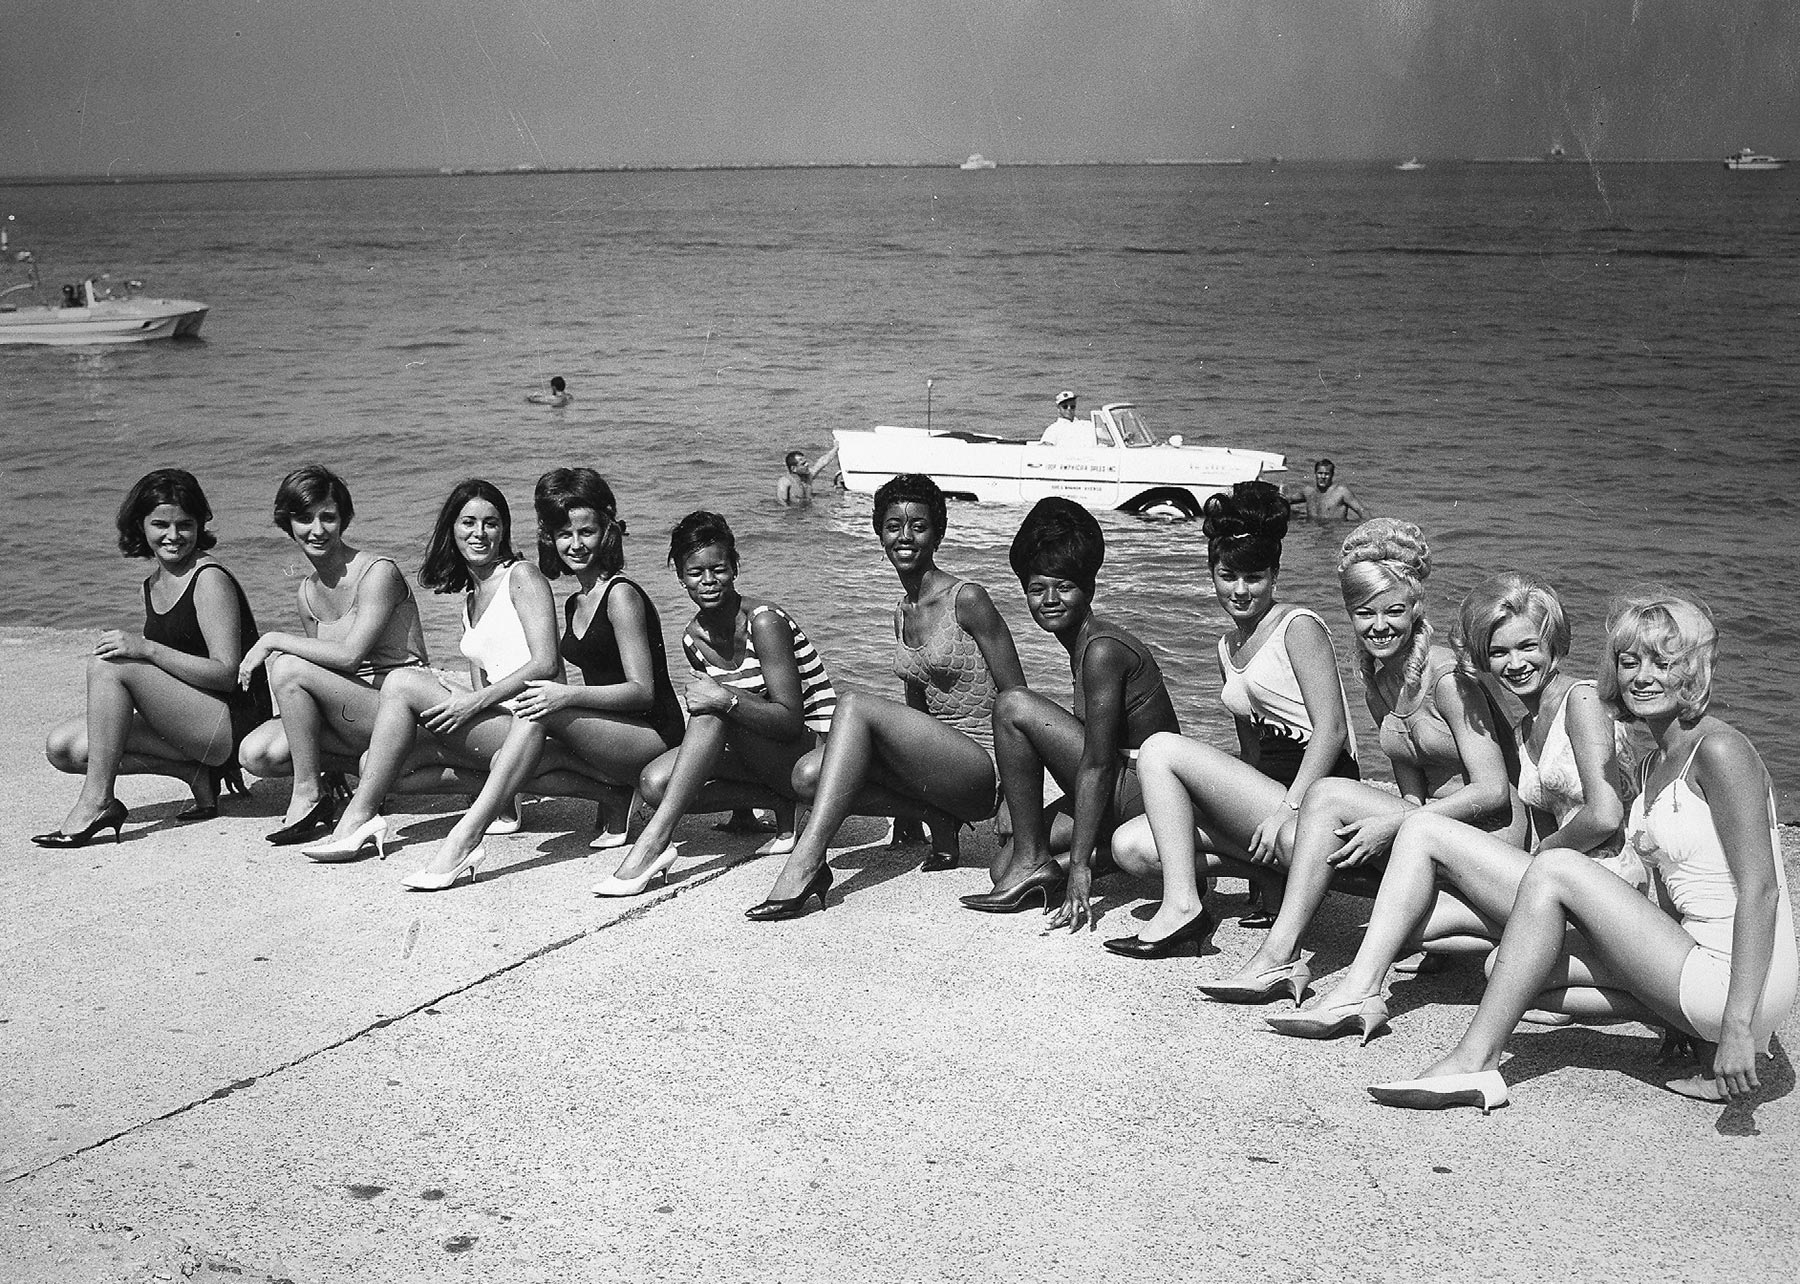 """Miss Mermaid"" Contestants at Chicago's Air and Water Show, 1965. Chicago Park District Records: Photographs, Special Collections, Chicago Public Library."